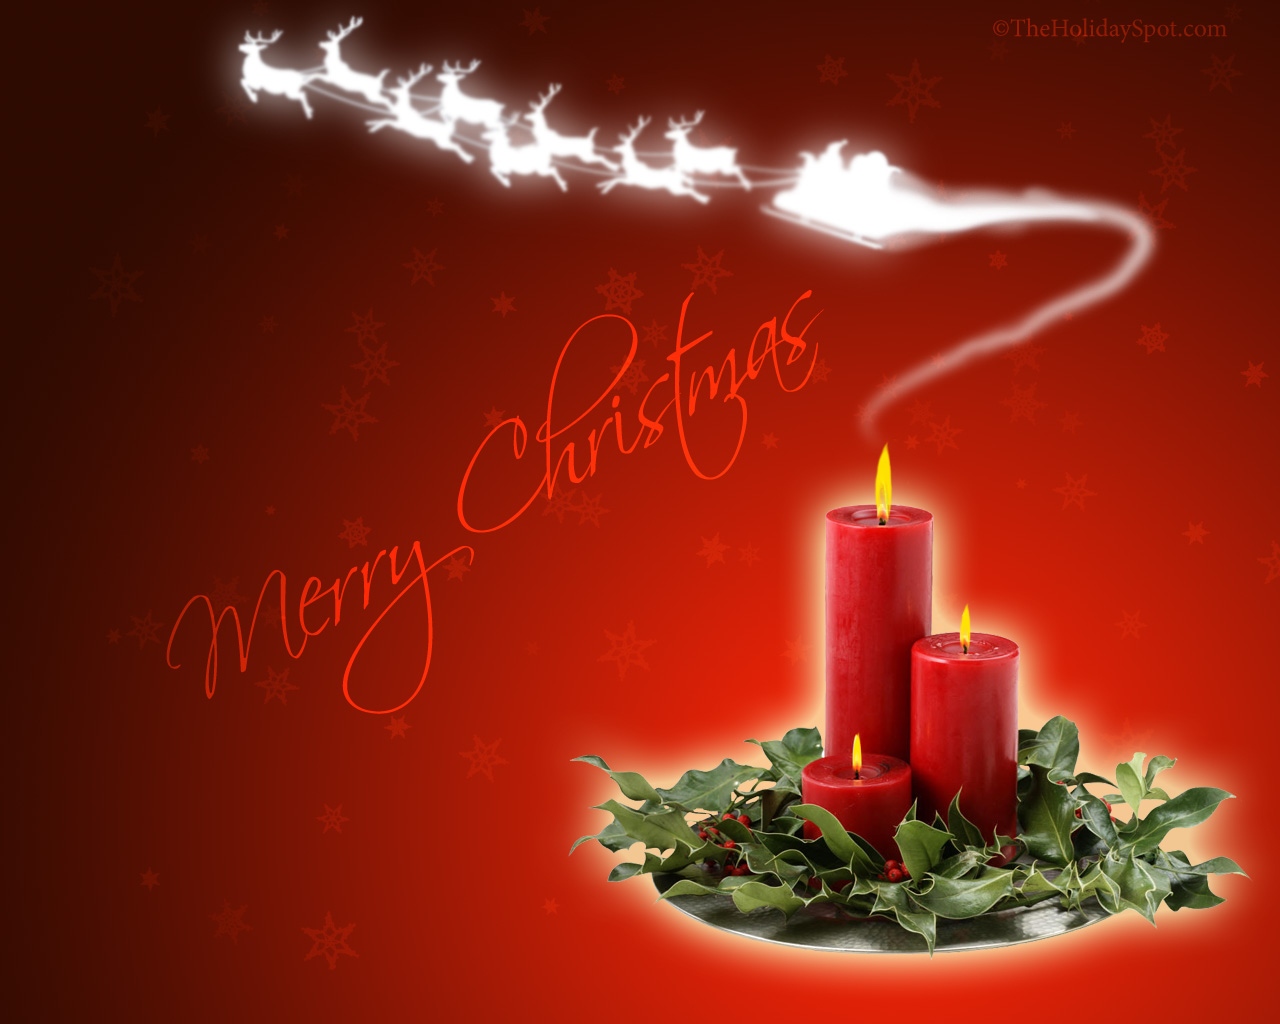 Religious Christmas Greetings Pictures Wallpapers